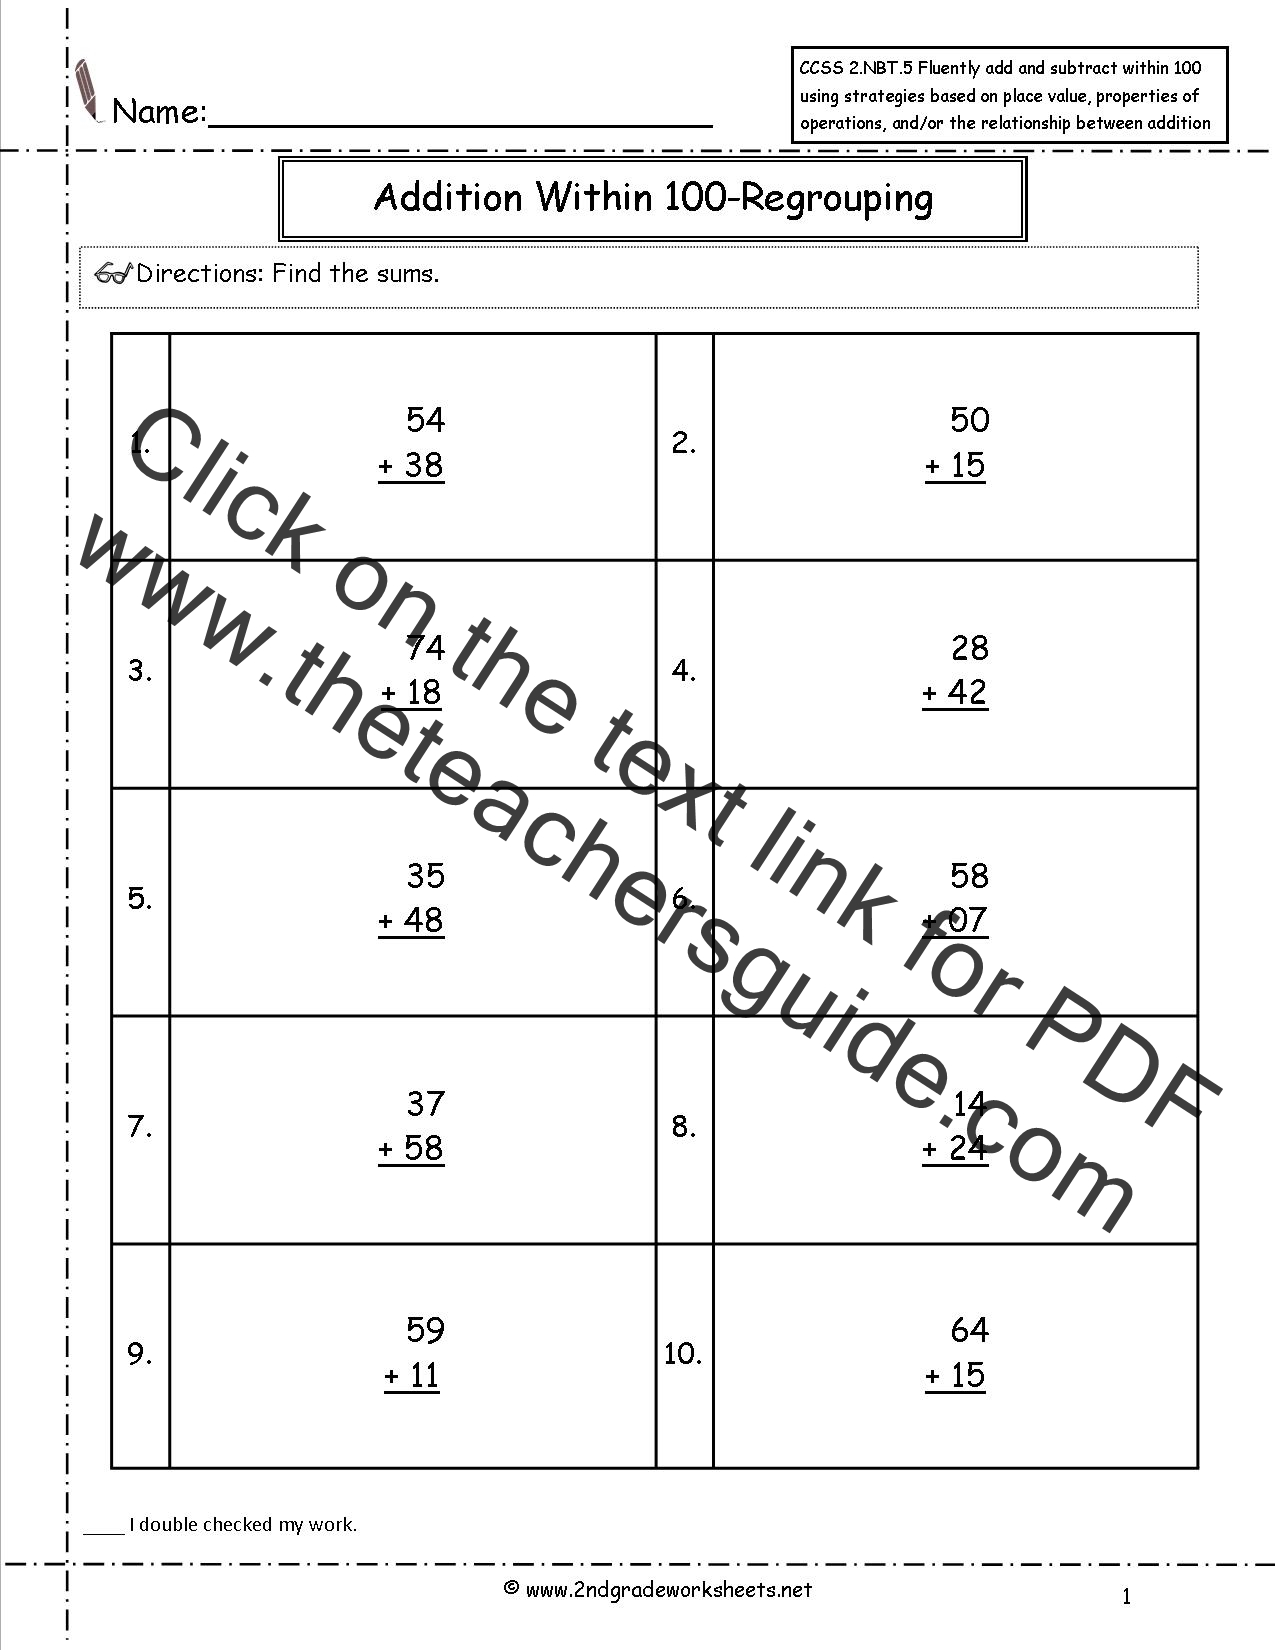 Worksheets 5.nbt.5 Worksheets ccss 2 nbt 5 worksheets two digit addition and subtraction within 3 4 6 7 8 9 10 11 12 13 14 15